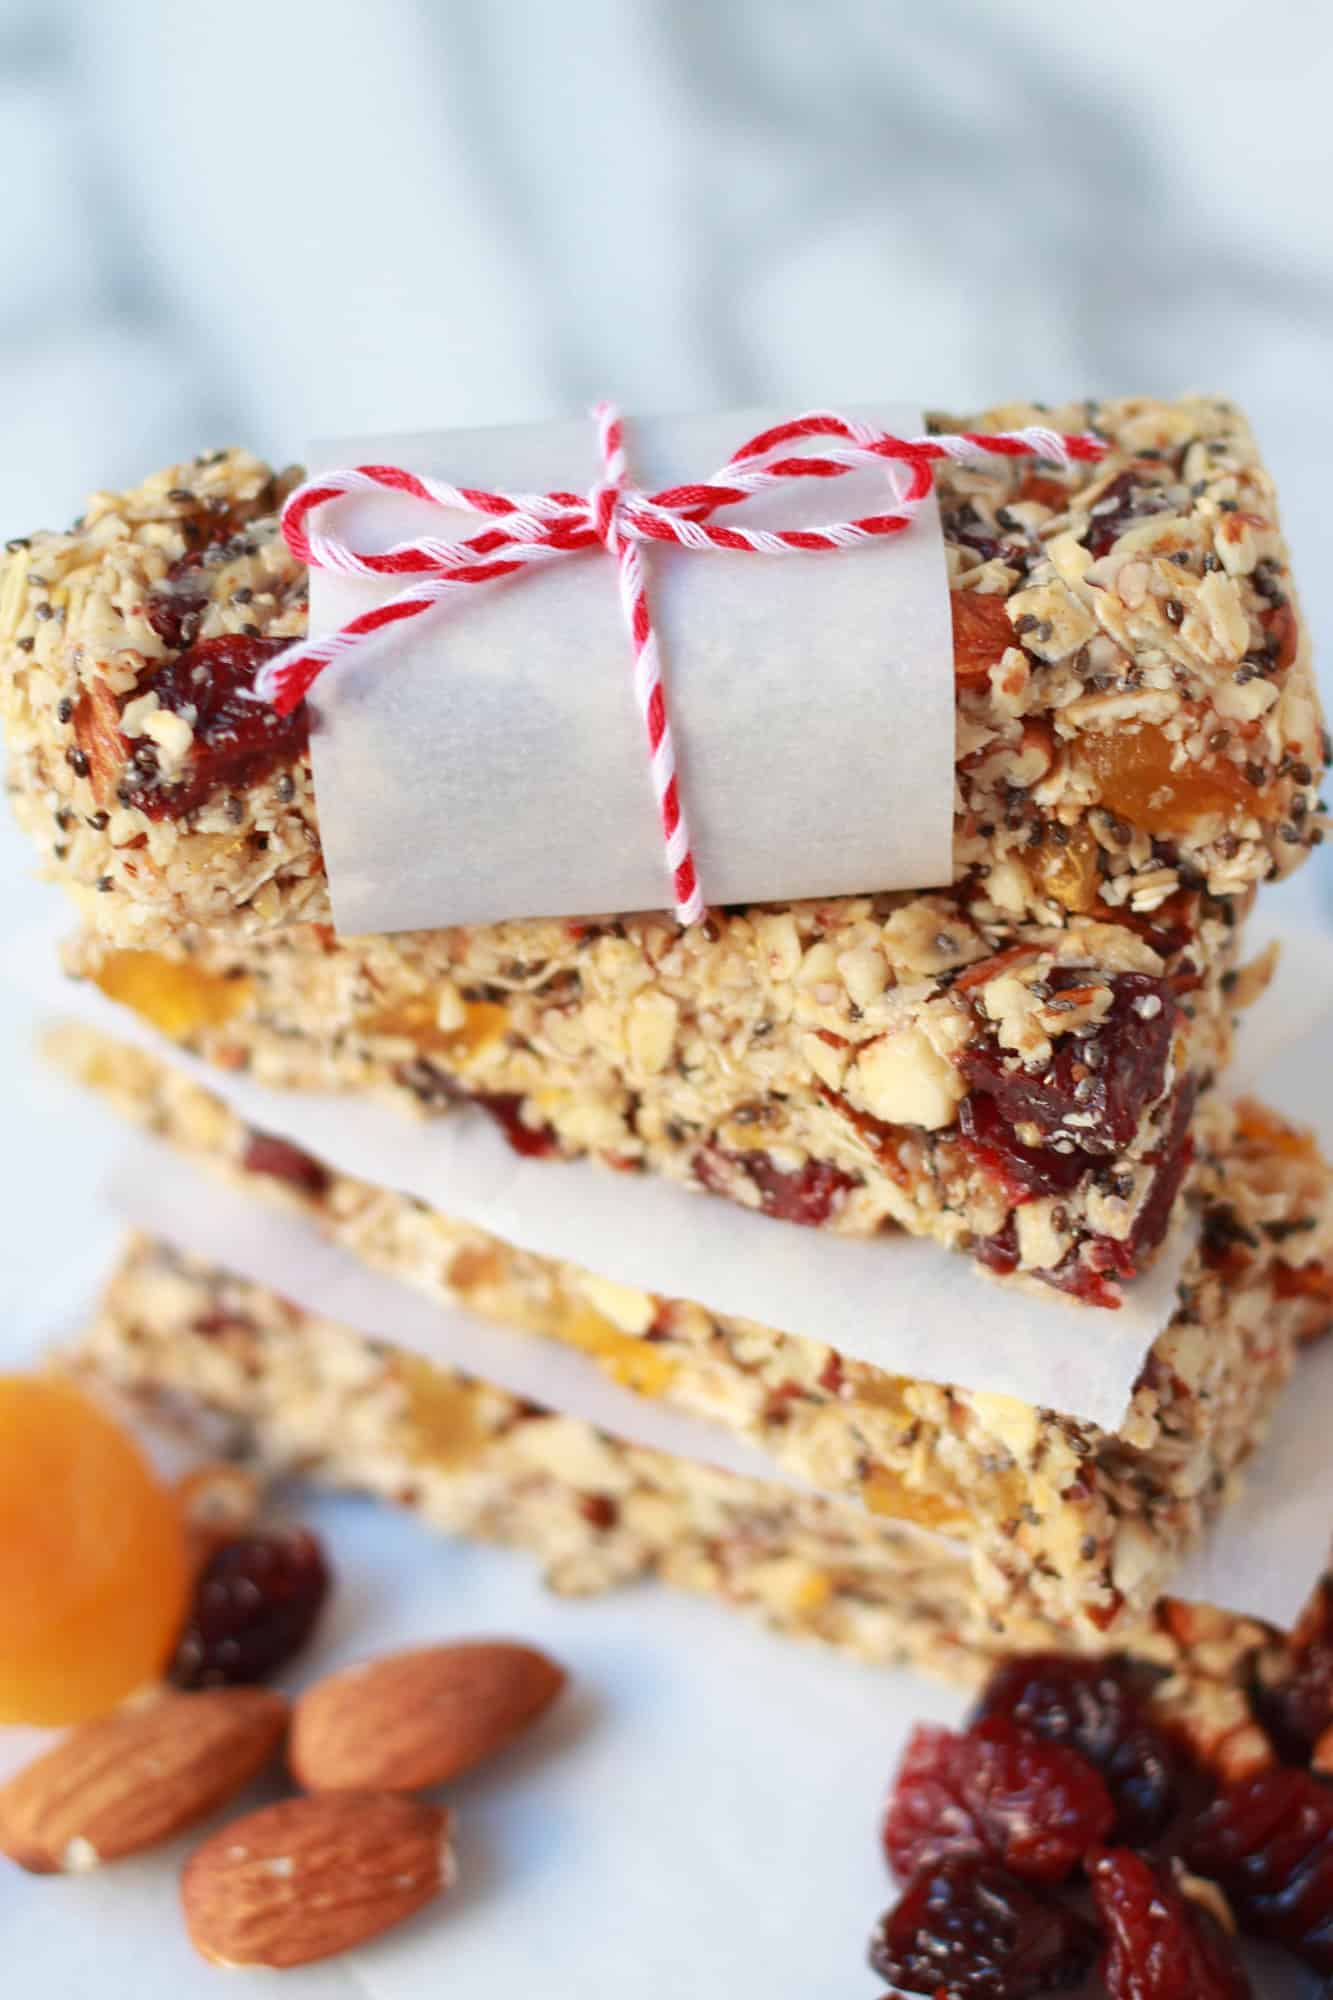 Stack of granola bars on pieces of parchment paper.